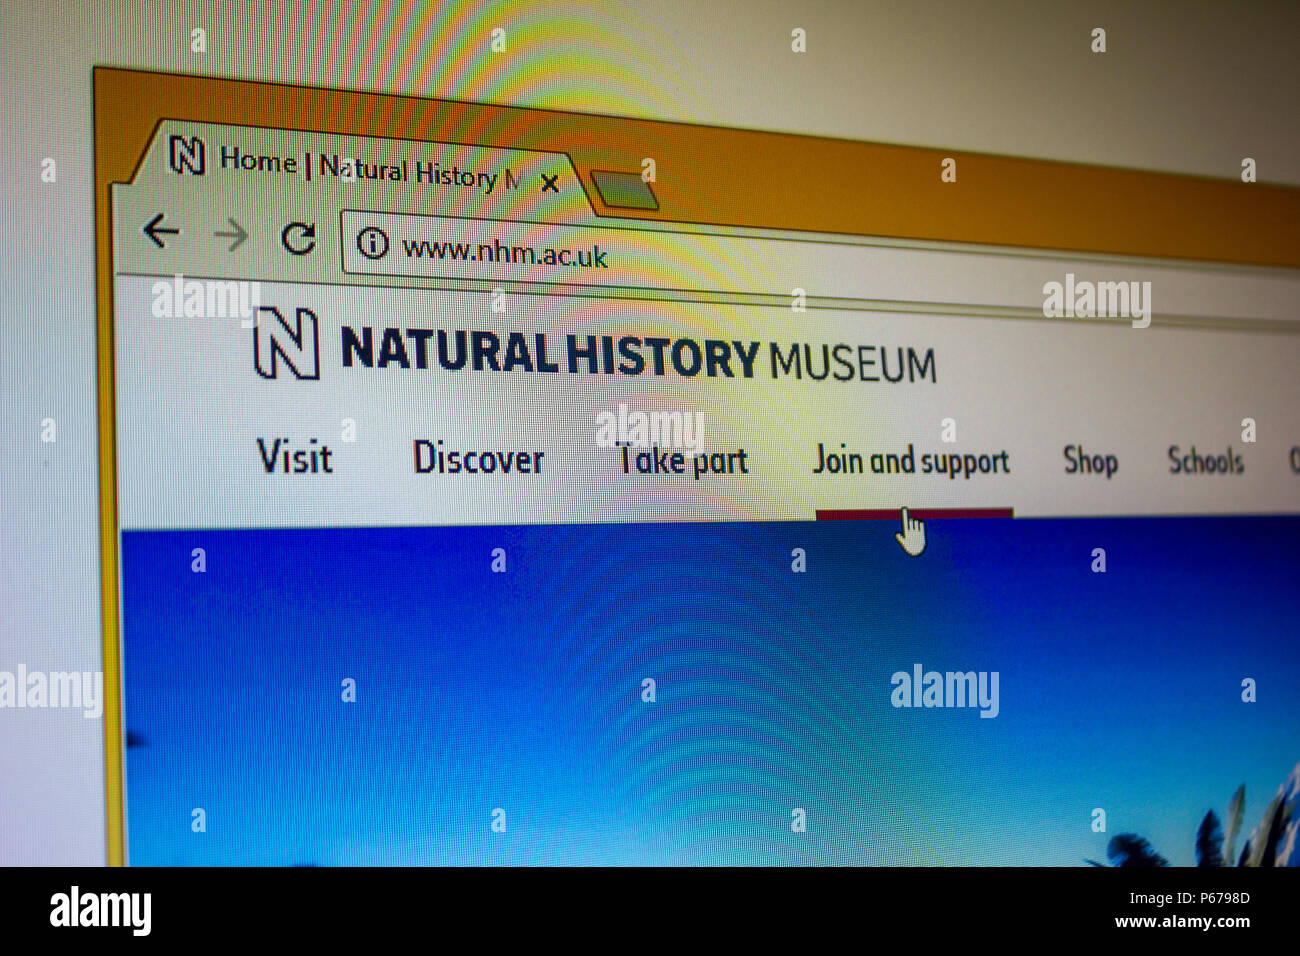 Website - Natural History Museum, London - Stock Image